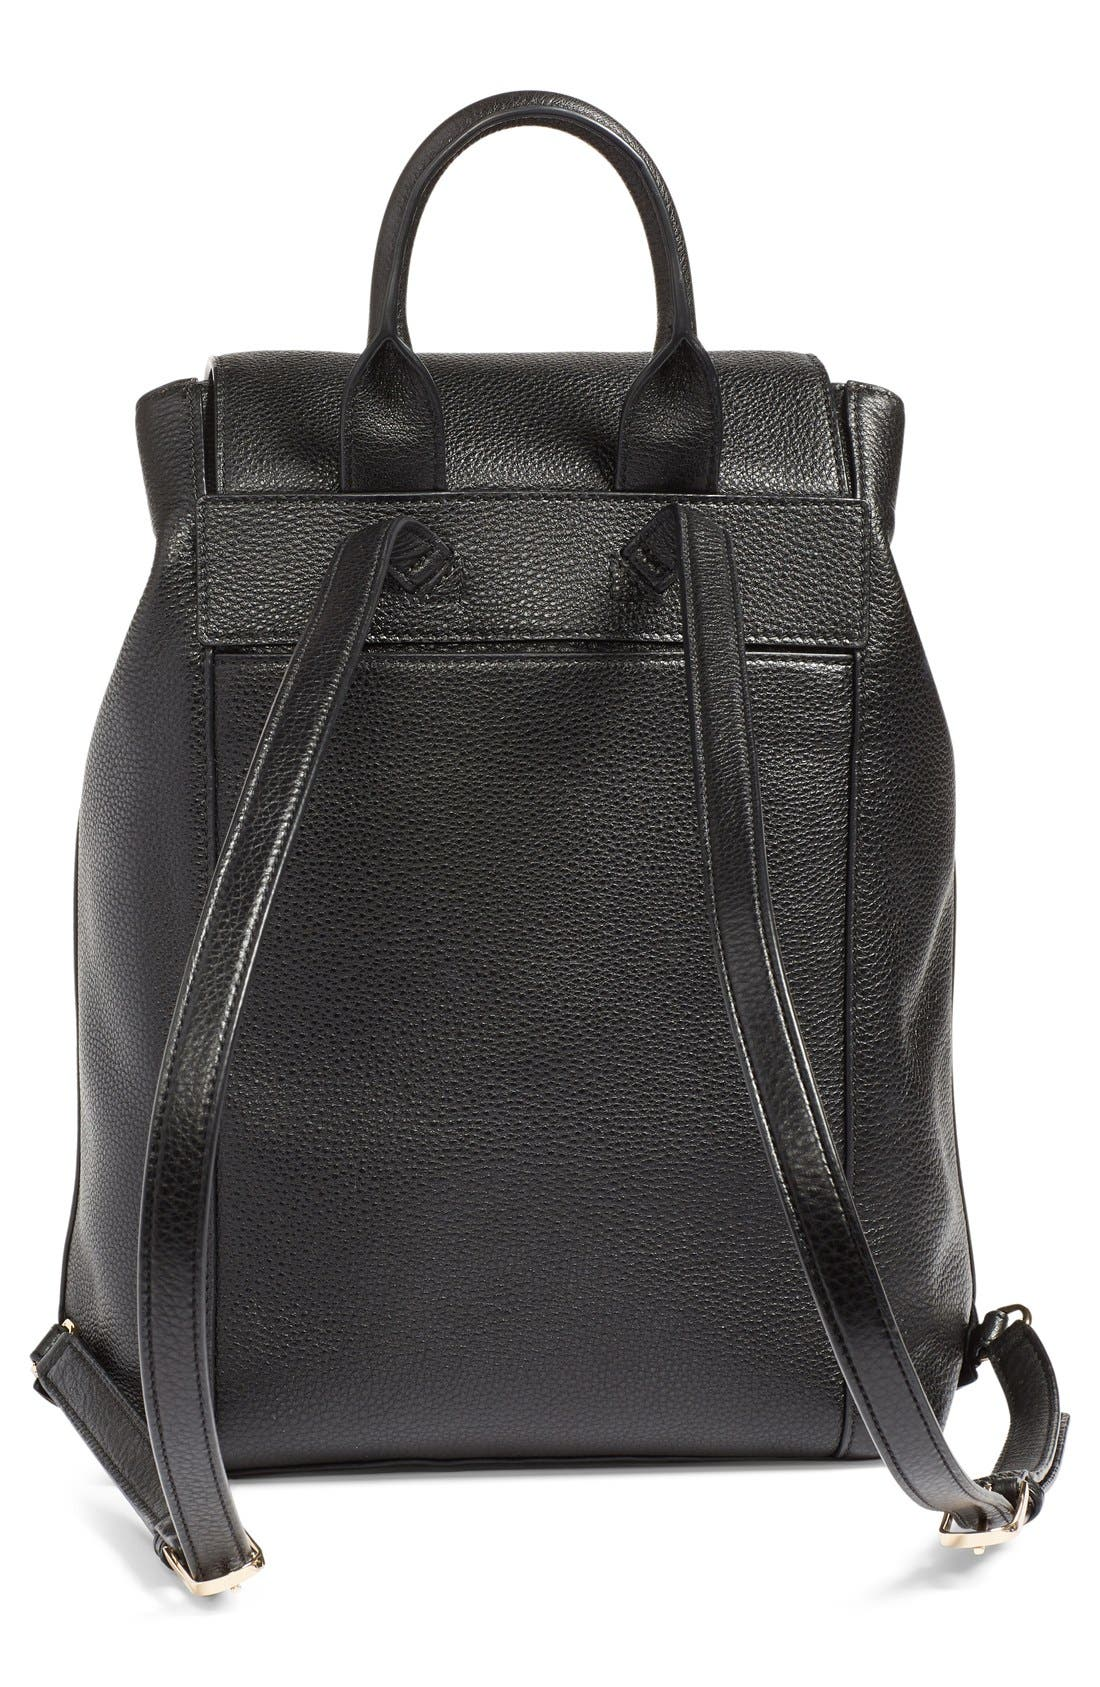 TORY BURCH,                             'Harper' Leather Backpack,                             Alternate thumbnail 3, color,                             012